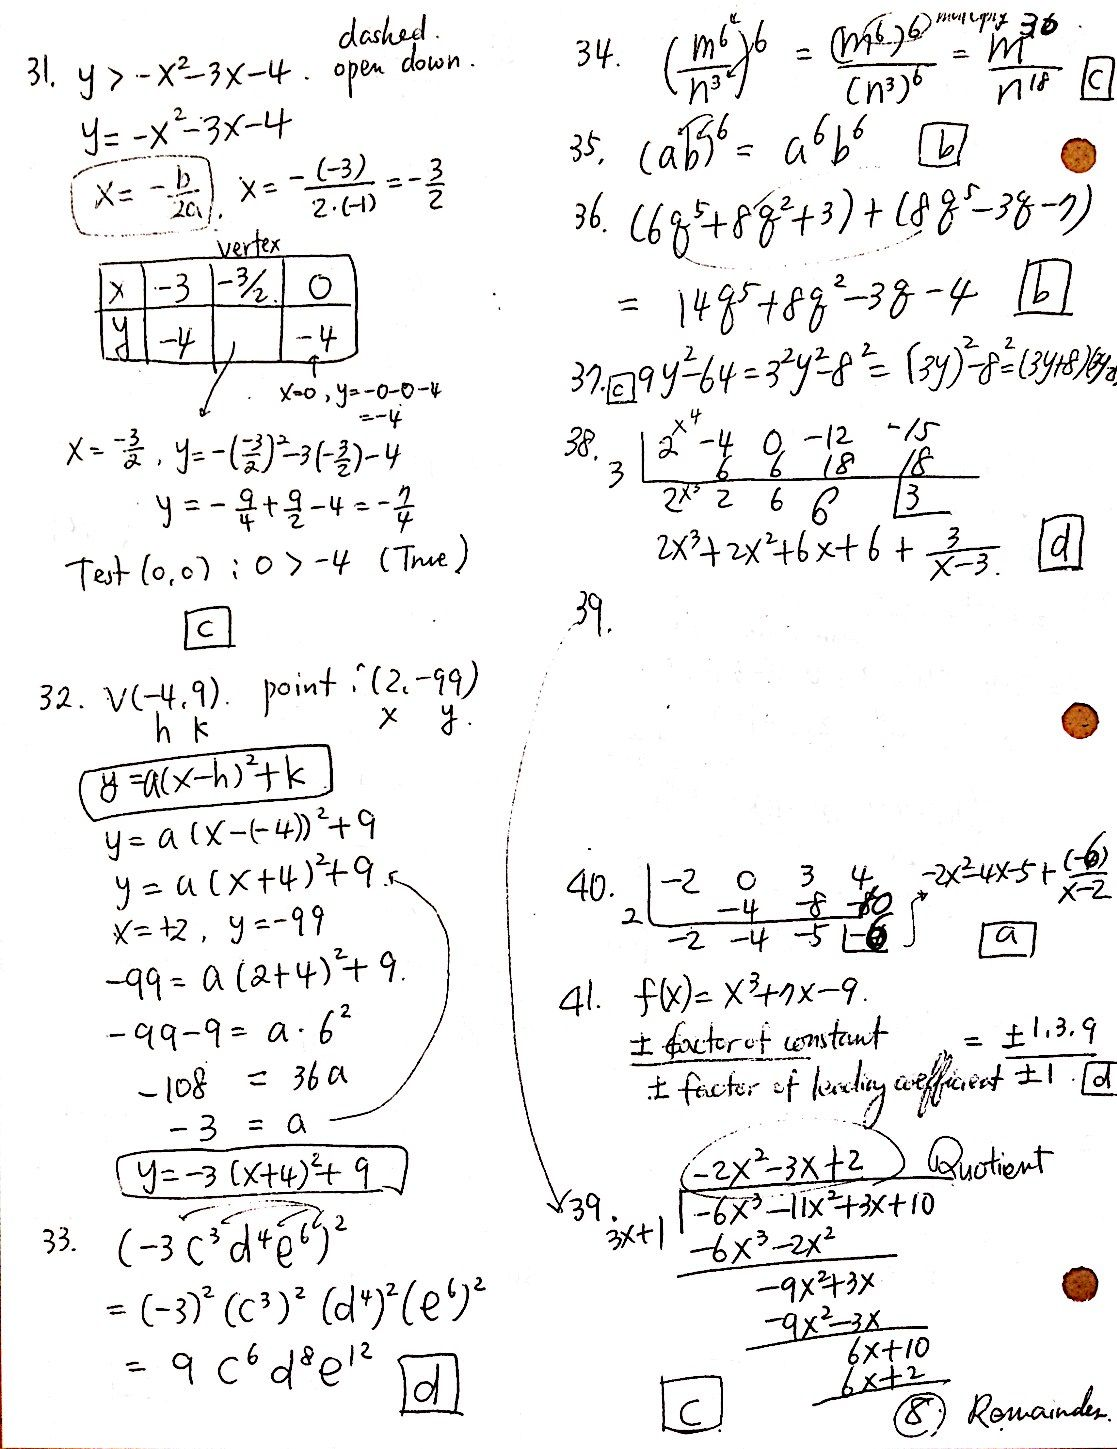 Worksheet Answers For Math Problems homework math answers help to problems hotmath original hotmath